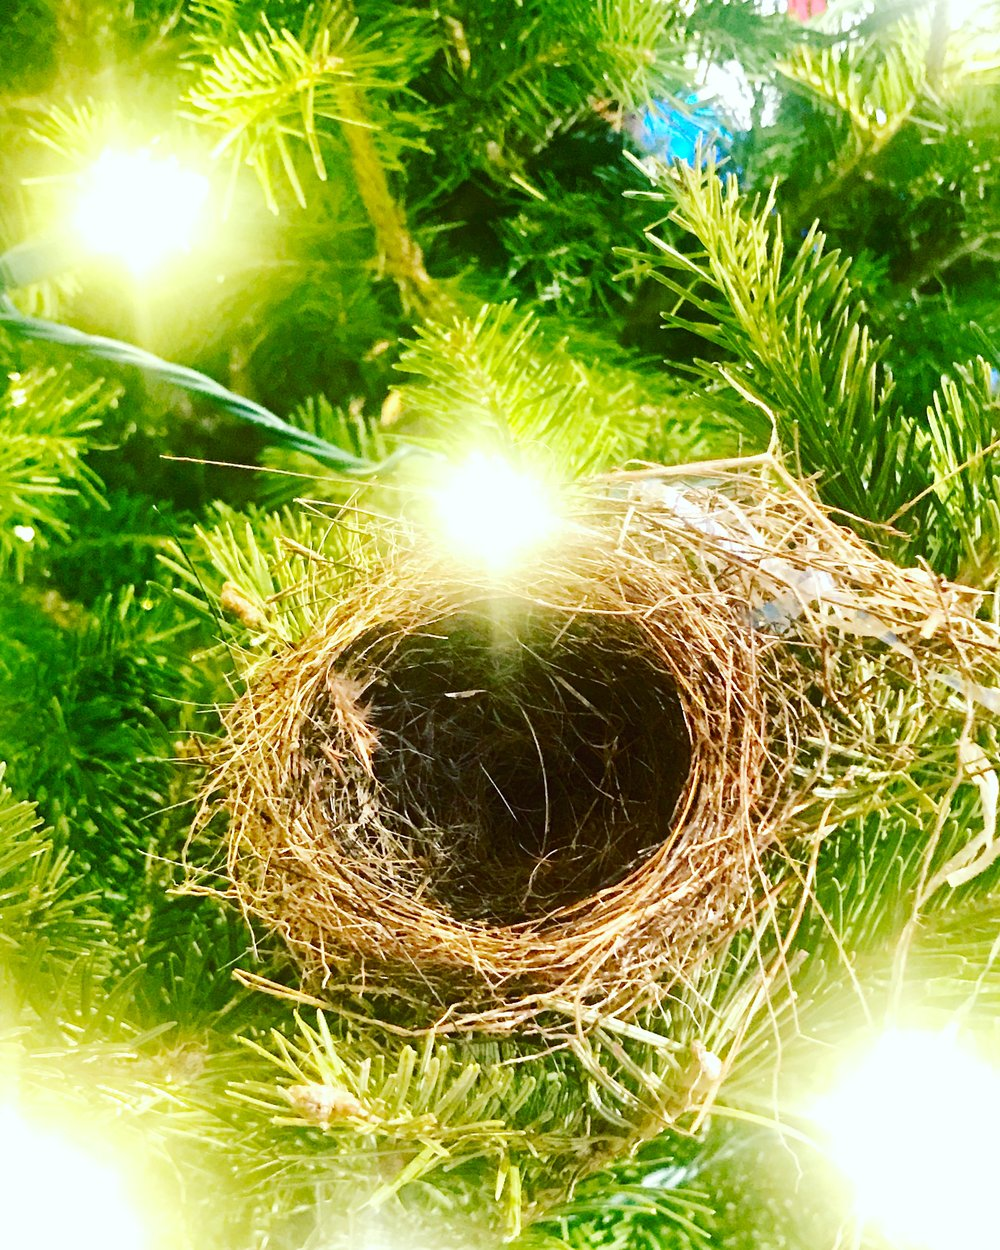 This morning's found nest, first ornament on Christmas tree